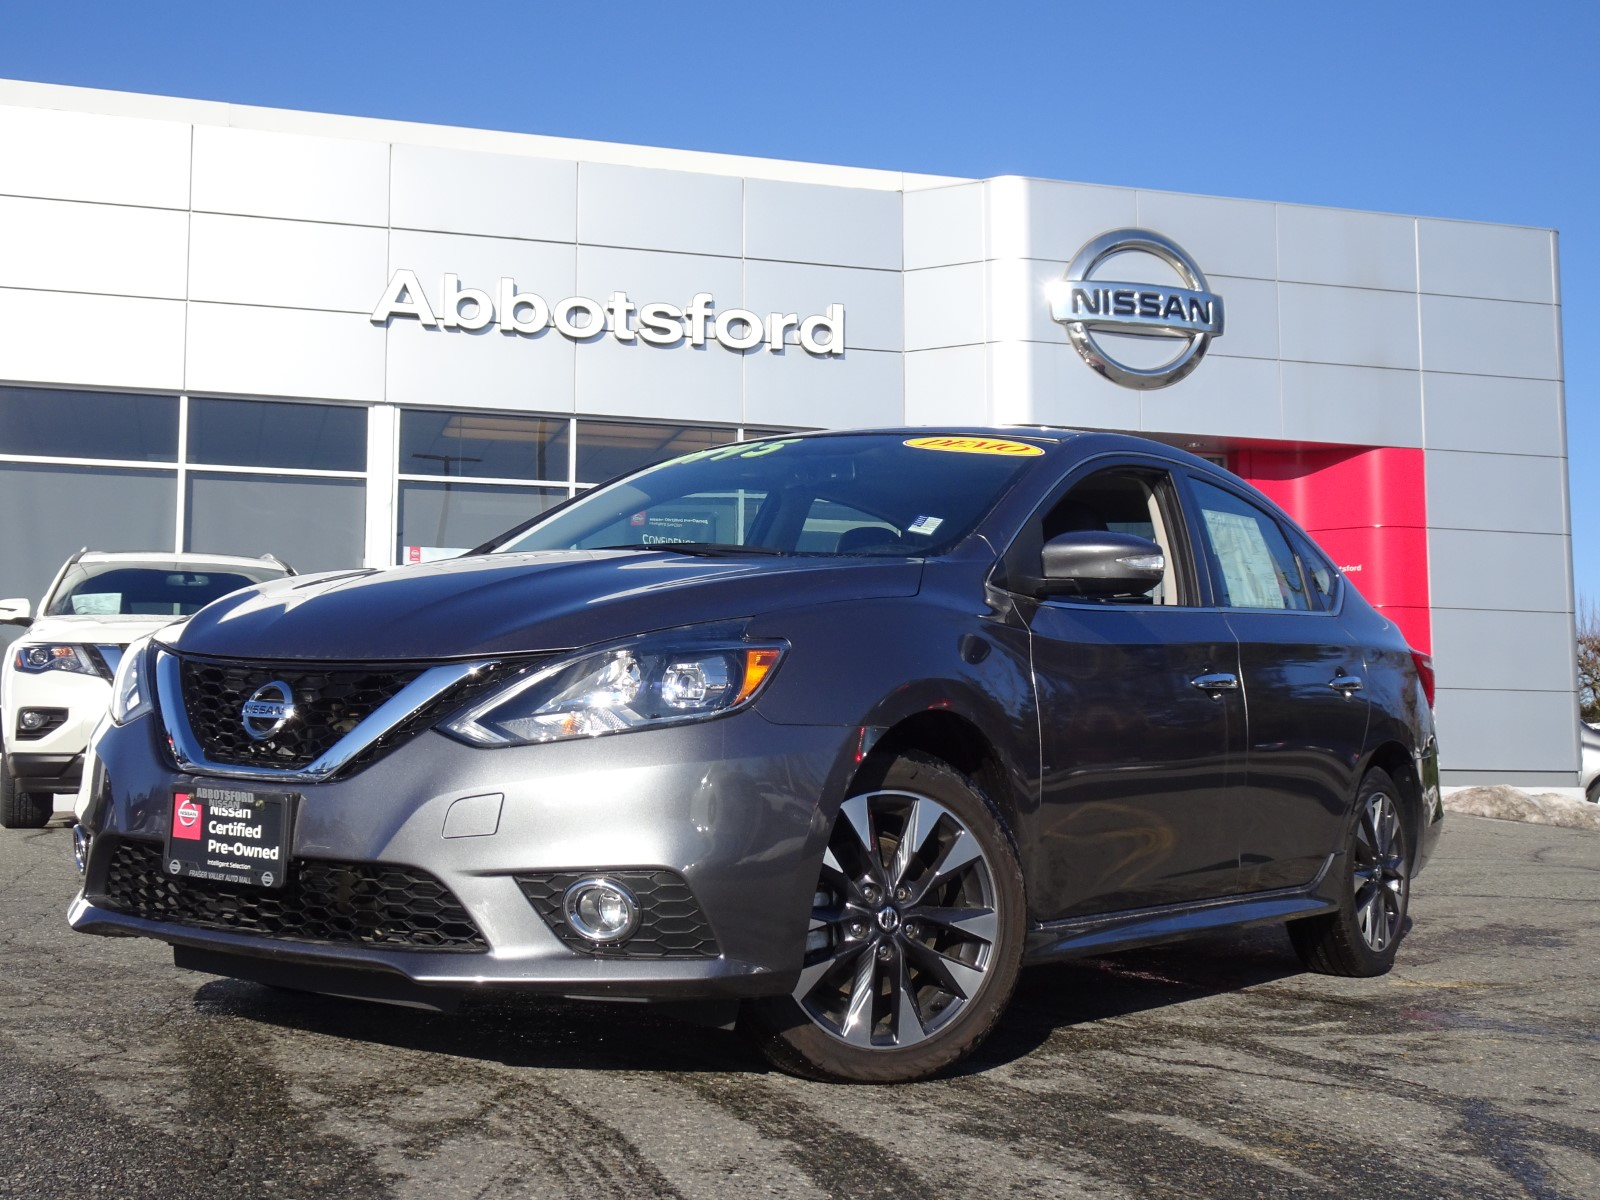 Used 2017 Nissan Sentra in Abbotsford,BC